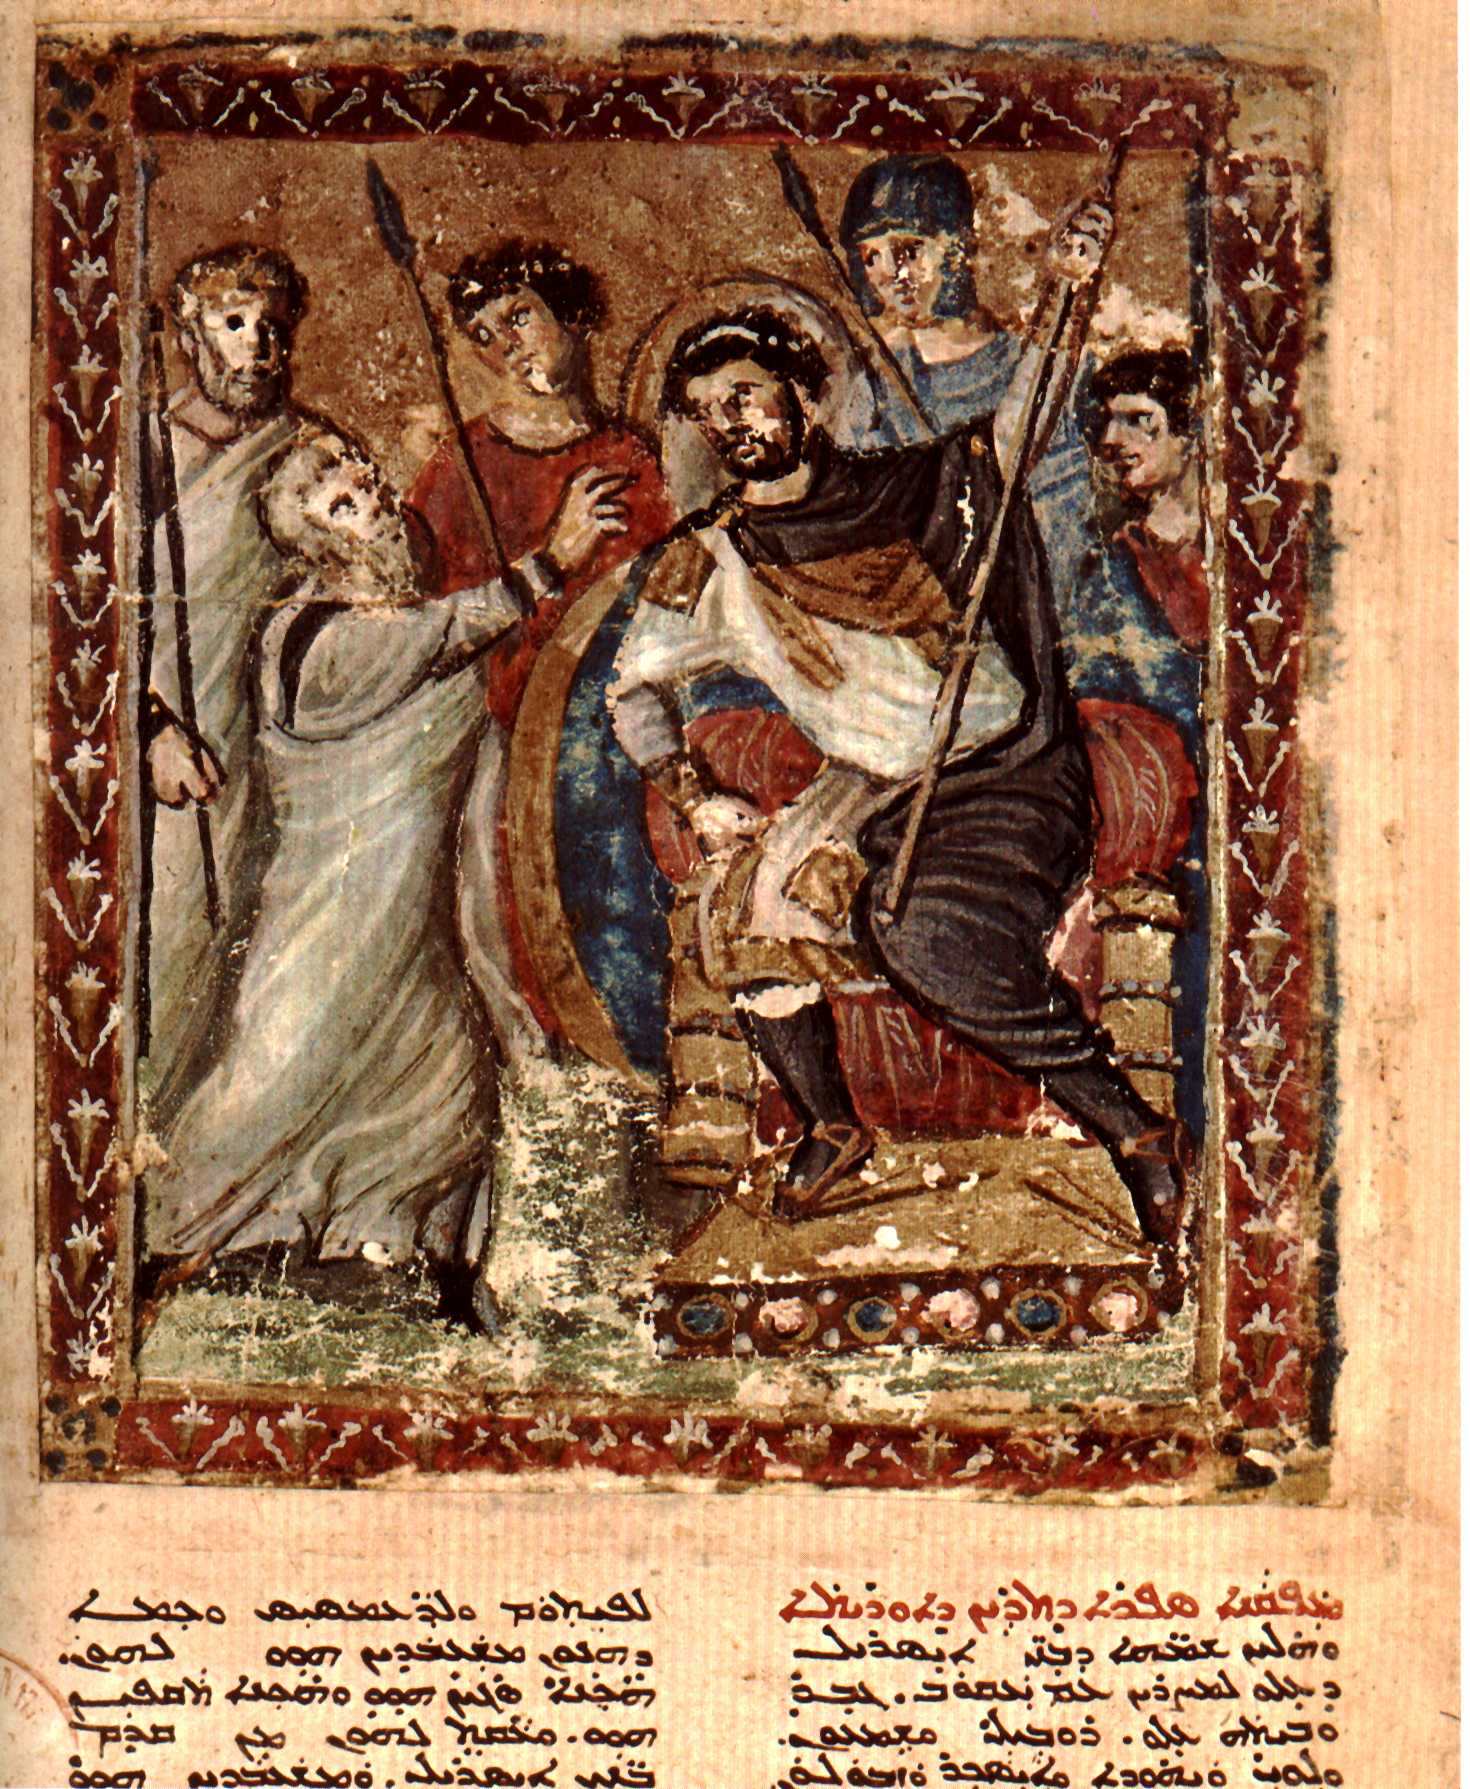 Moses before the Pharaoh, a 6th-century miniature from the Syriac Bible of Paris. dans immagini sacre SyriacBibleParisFolio8rrMosesBeforePharaoh